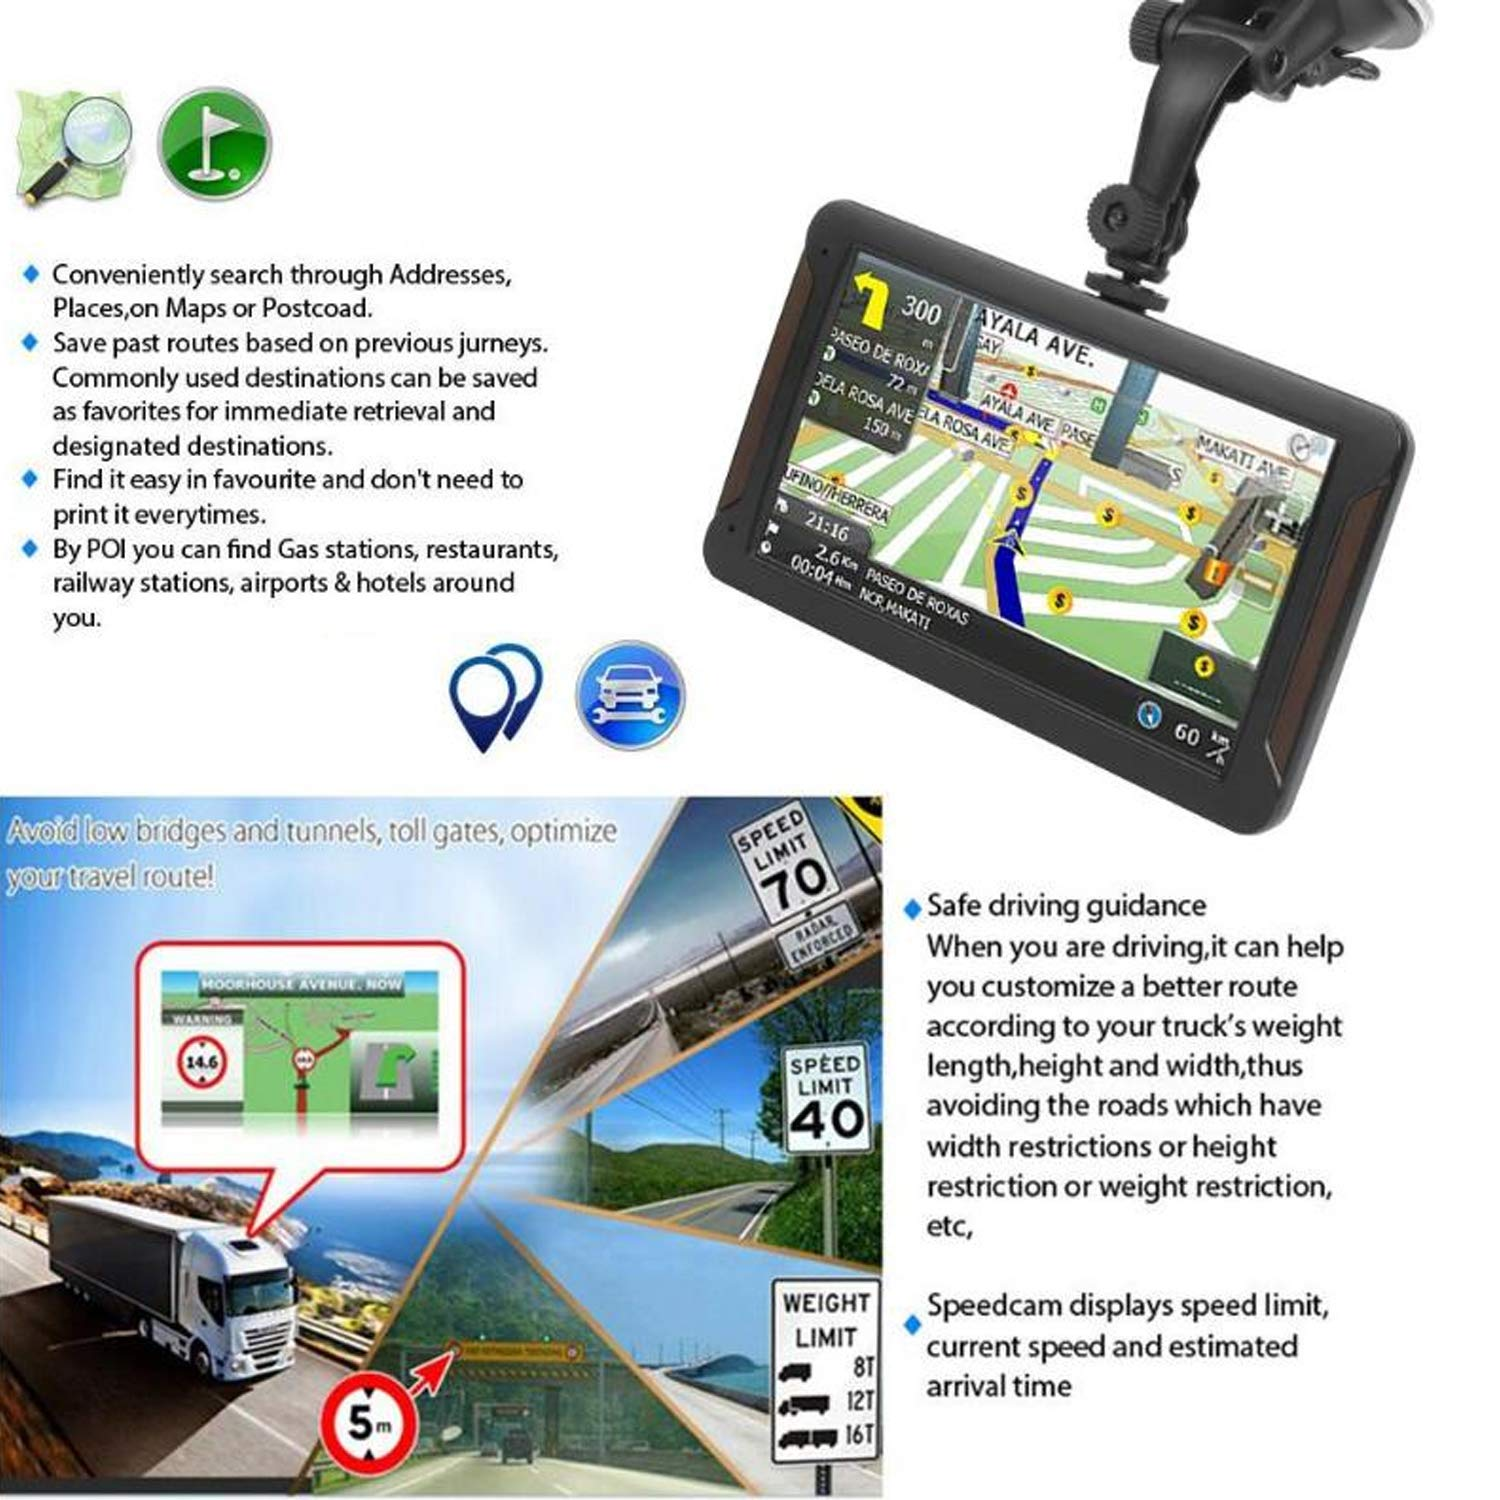 AONEREX GPS Navigation 7inch HD-8GB 256Mb Car GPS Navigation, Voice Traffic Warning,Speed Limit Reminder Satellite Navigation System with Non-Slip Car Bracket Holder-Lifetime Free Map Updates by Aonerex (Image #6)